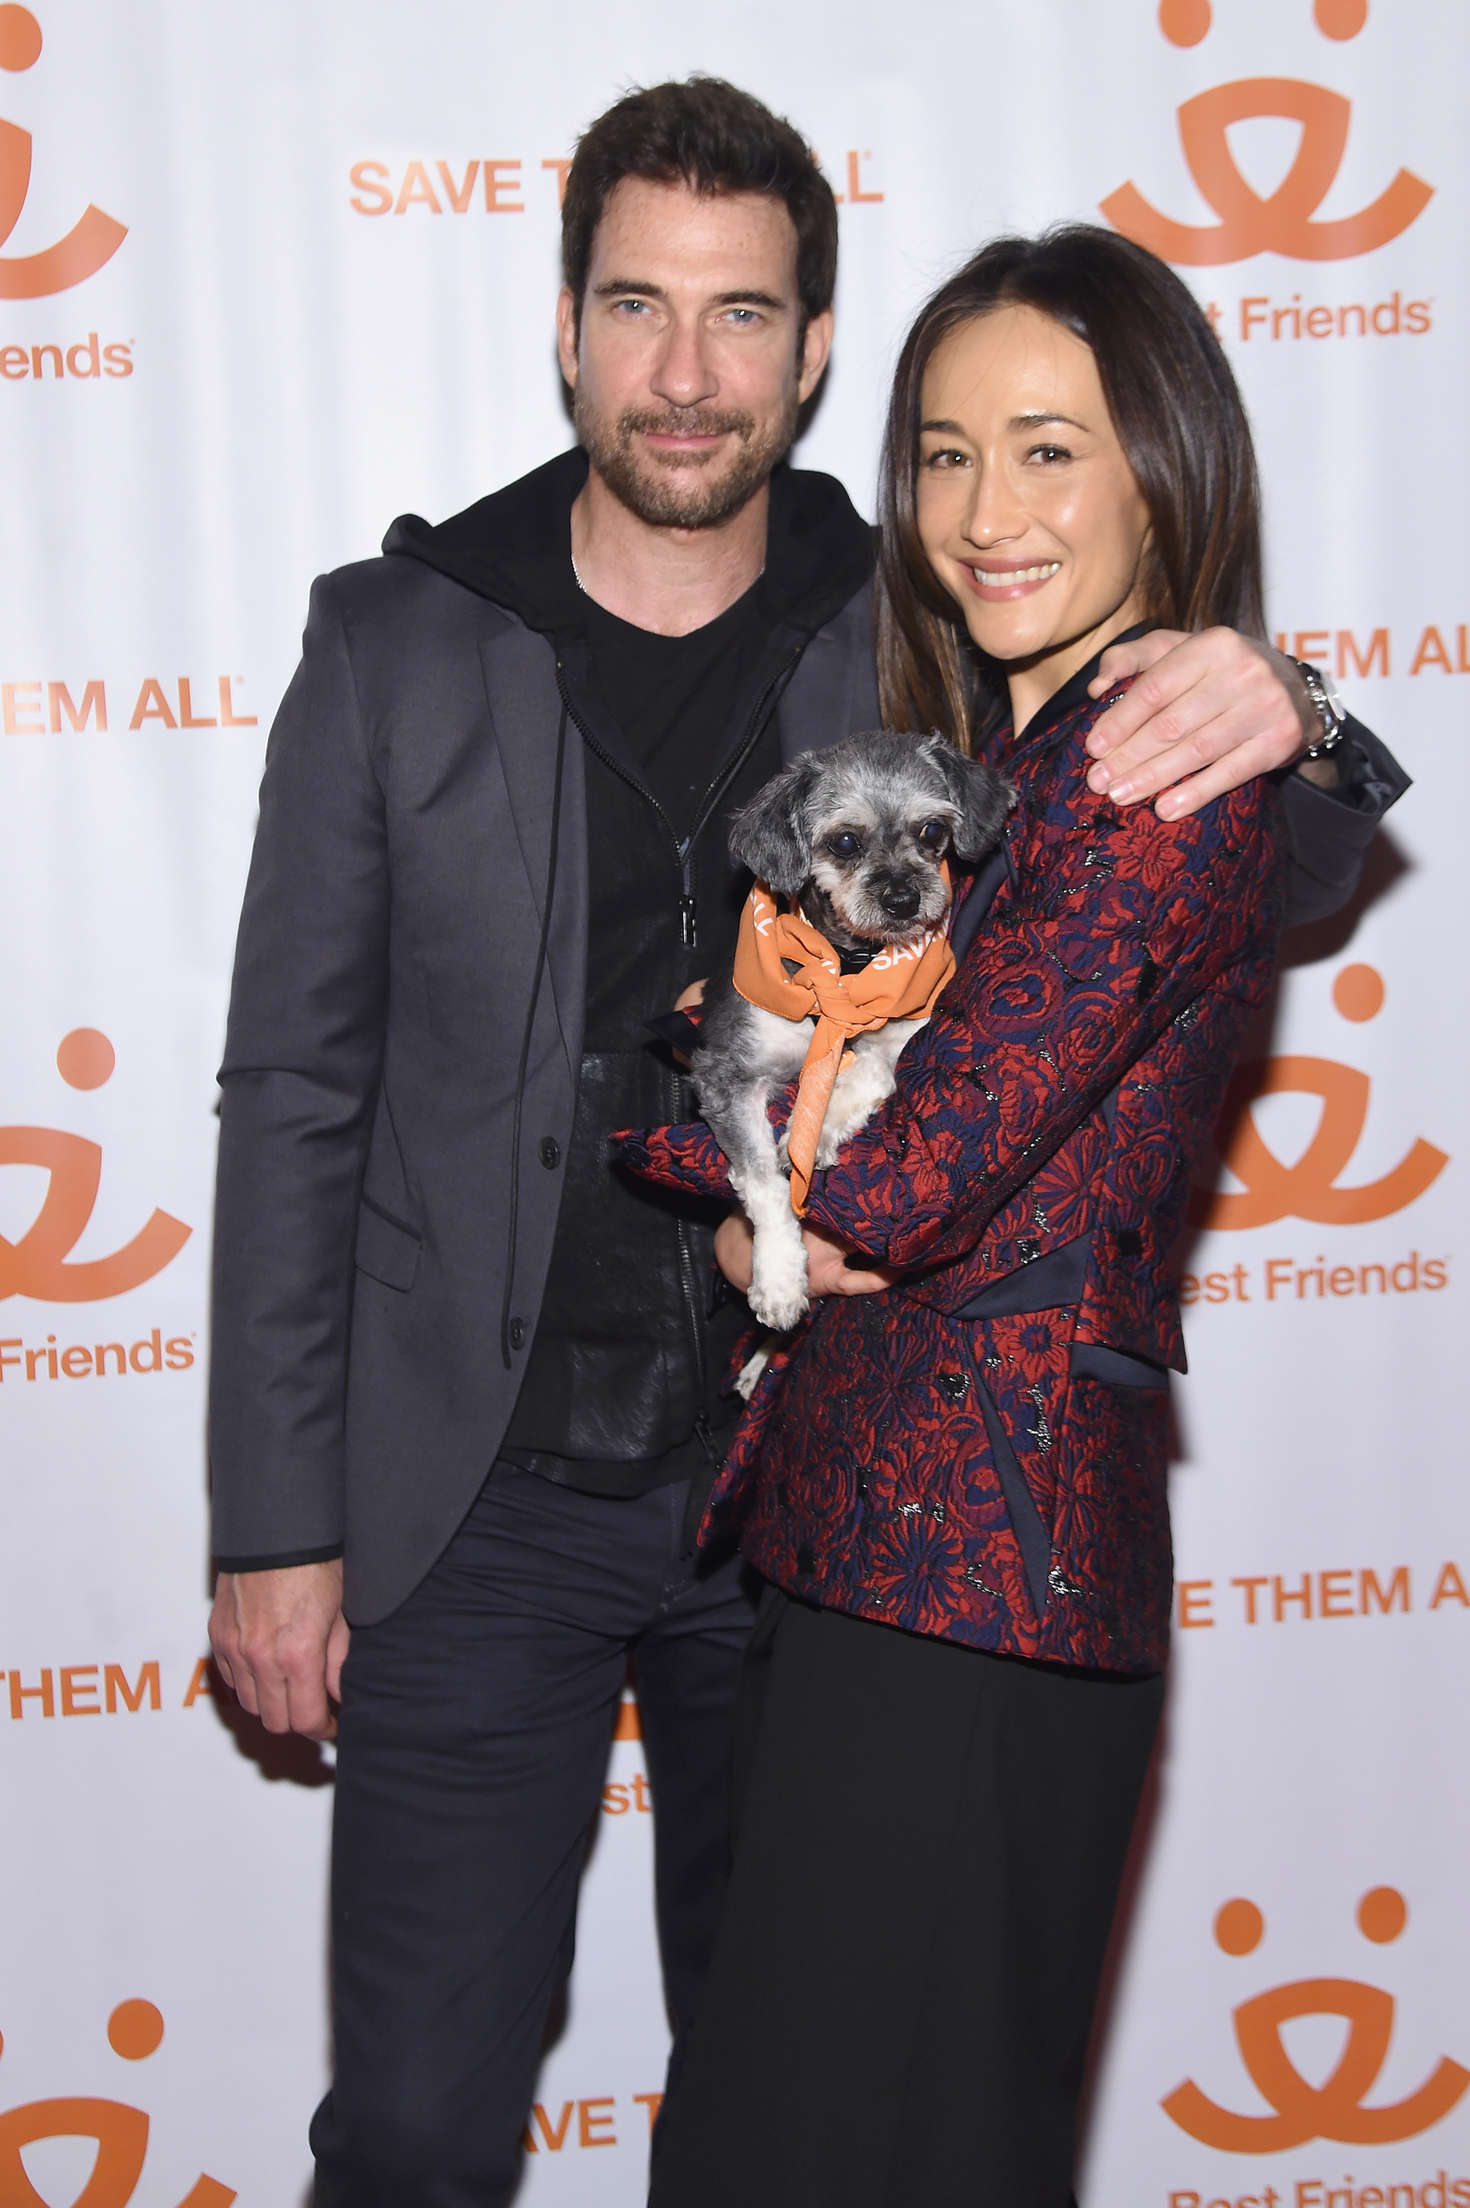 Maggie Q New York Notables Gathering at the Best Friends Animal Society Benefit to Save Them All in New York